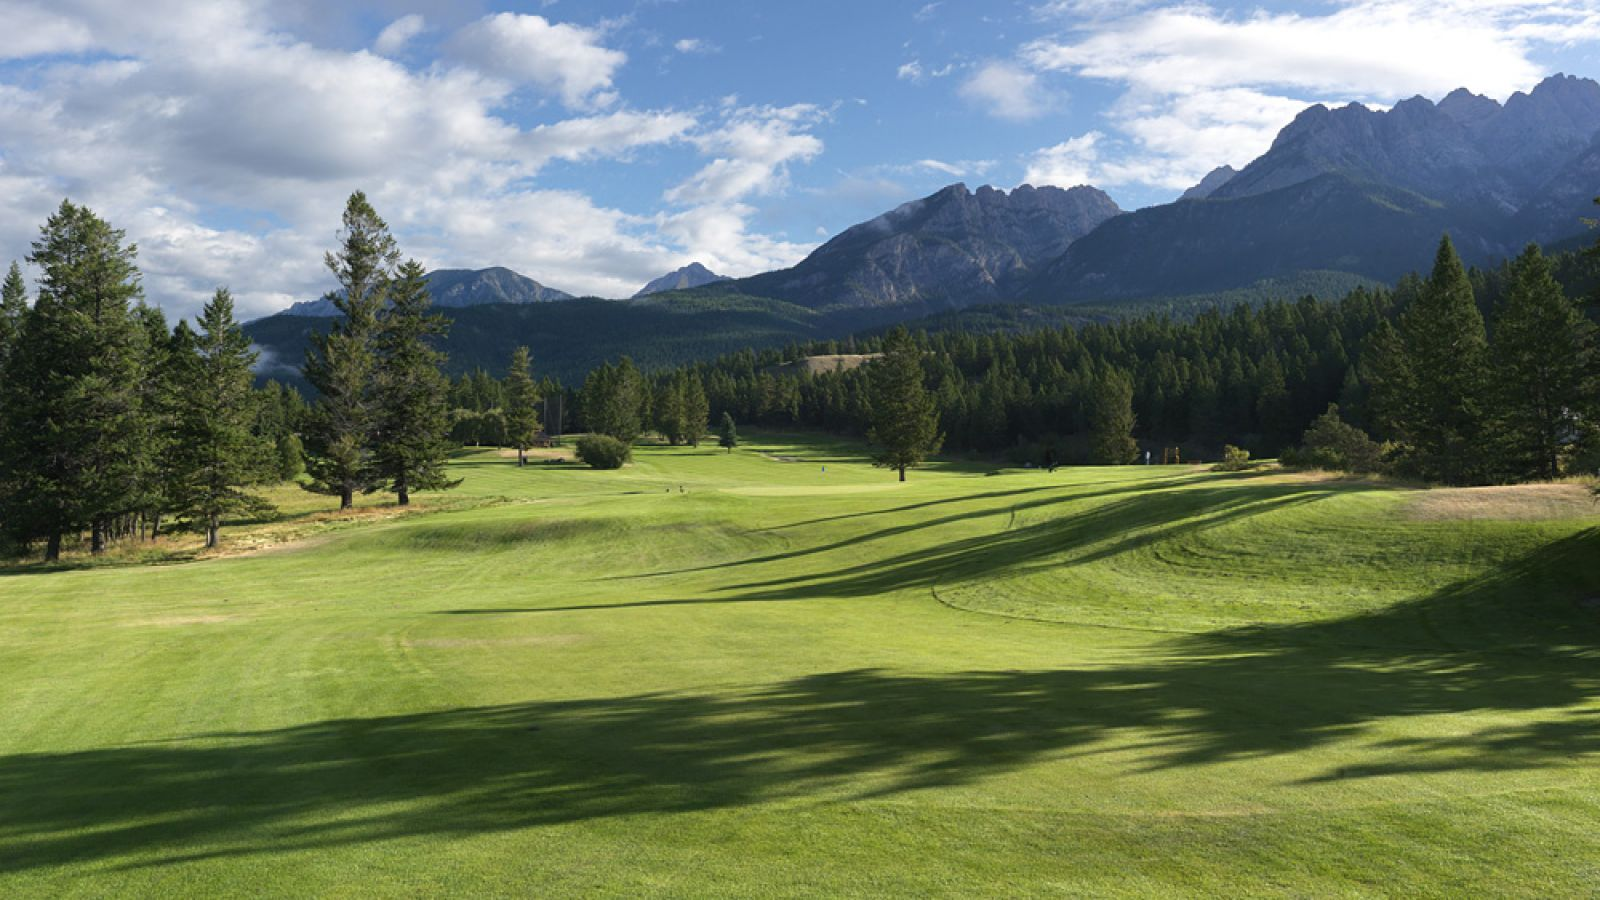 Mountainside Golf Course offers beautiful conditioning.